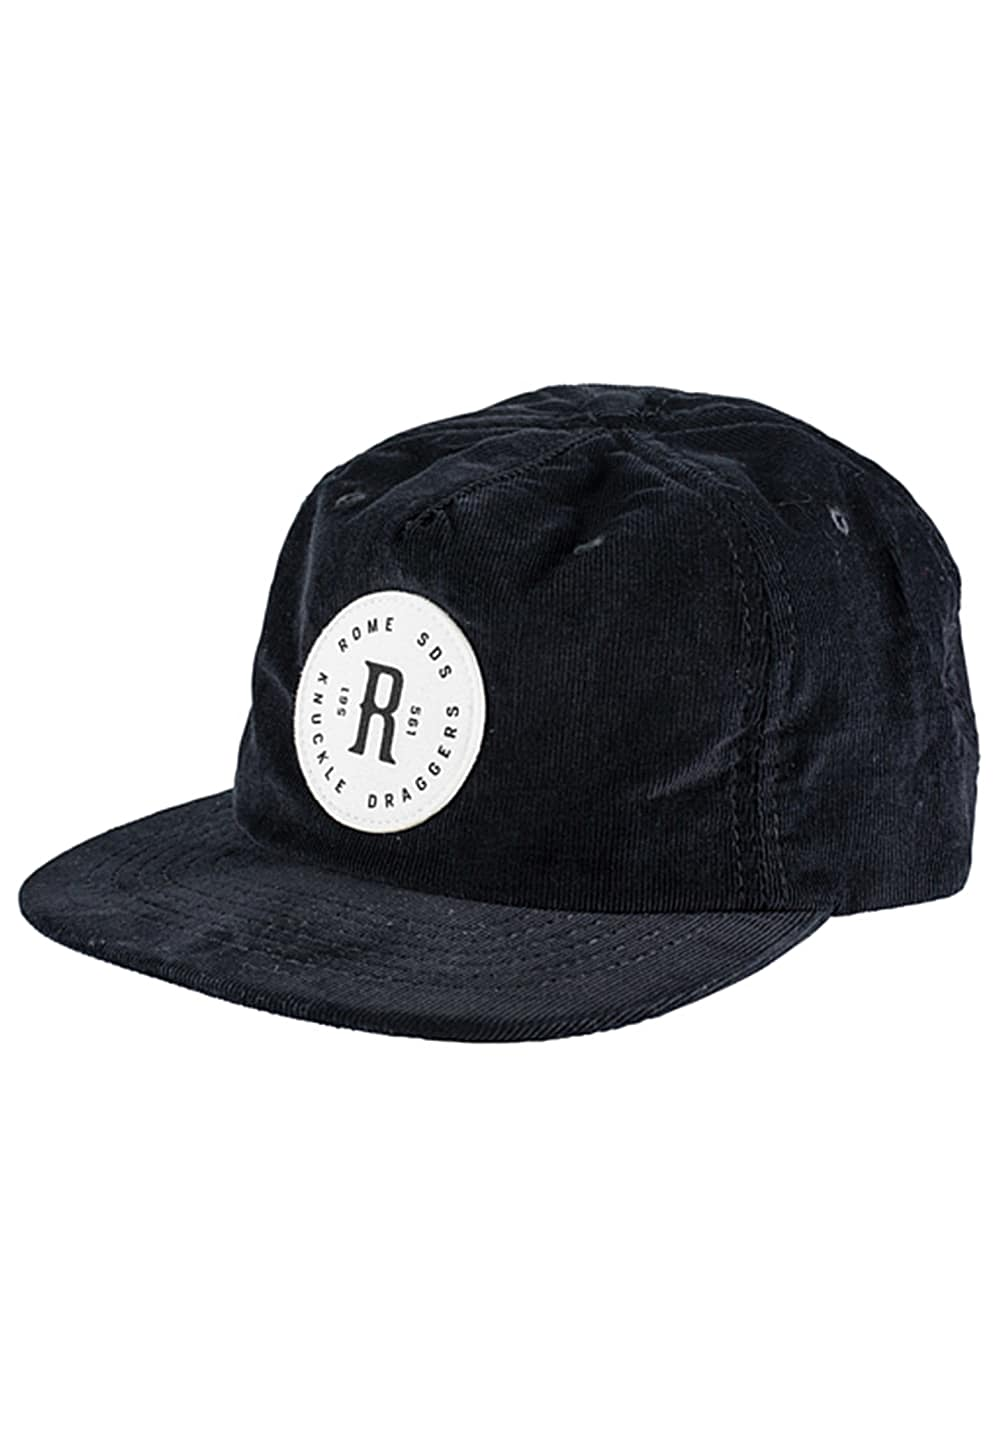 Rome Authentic Snapback Cap - Schwarz